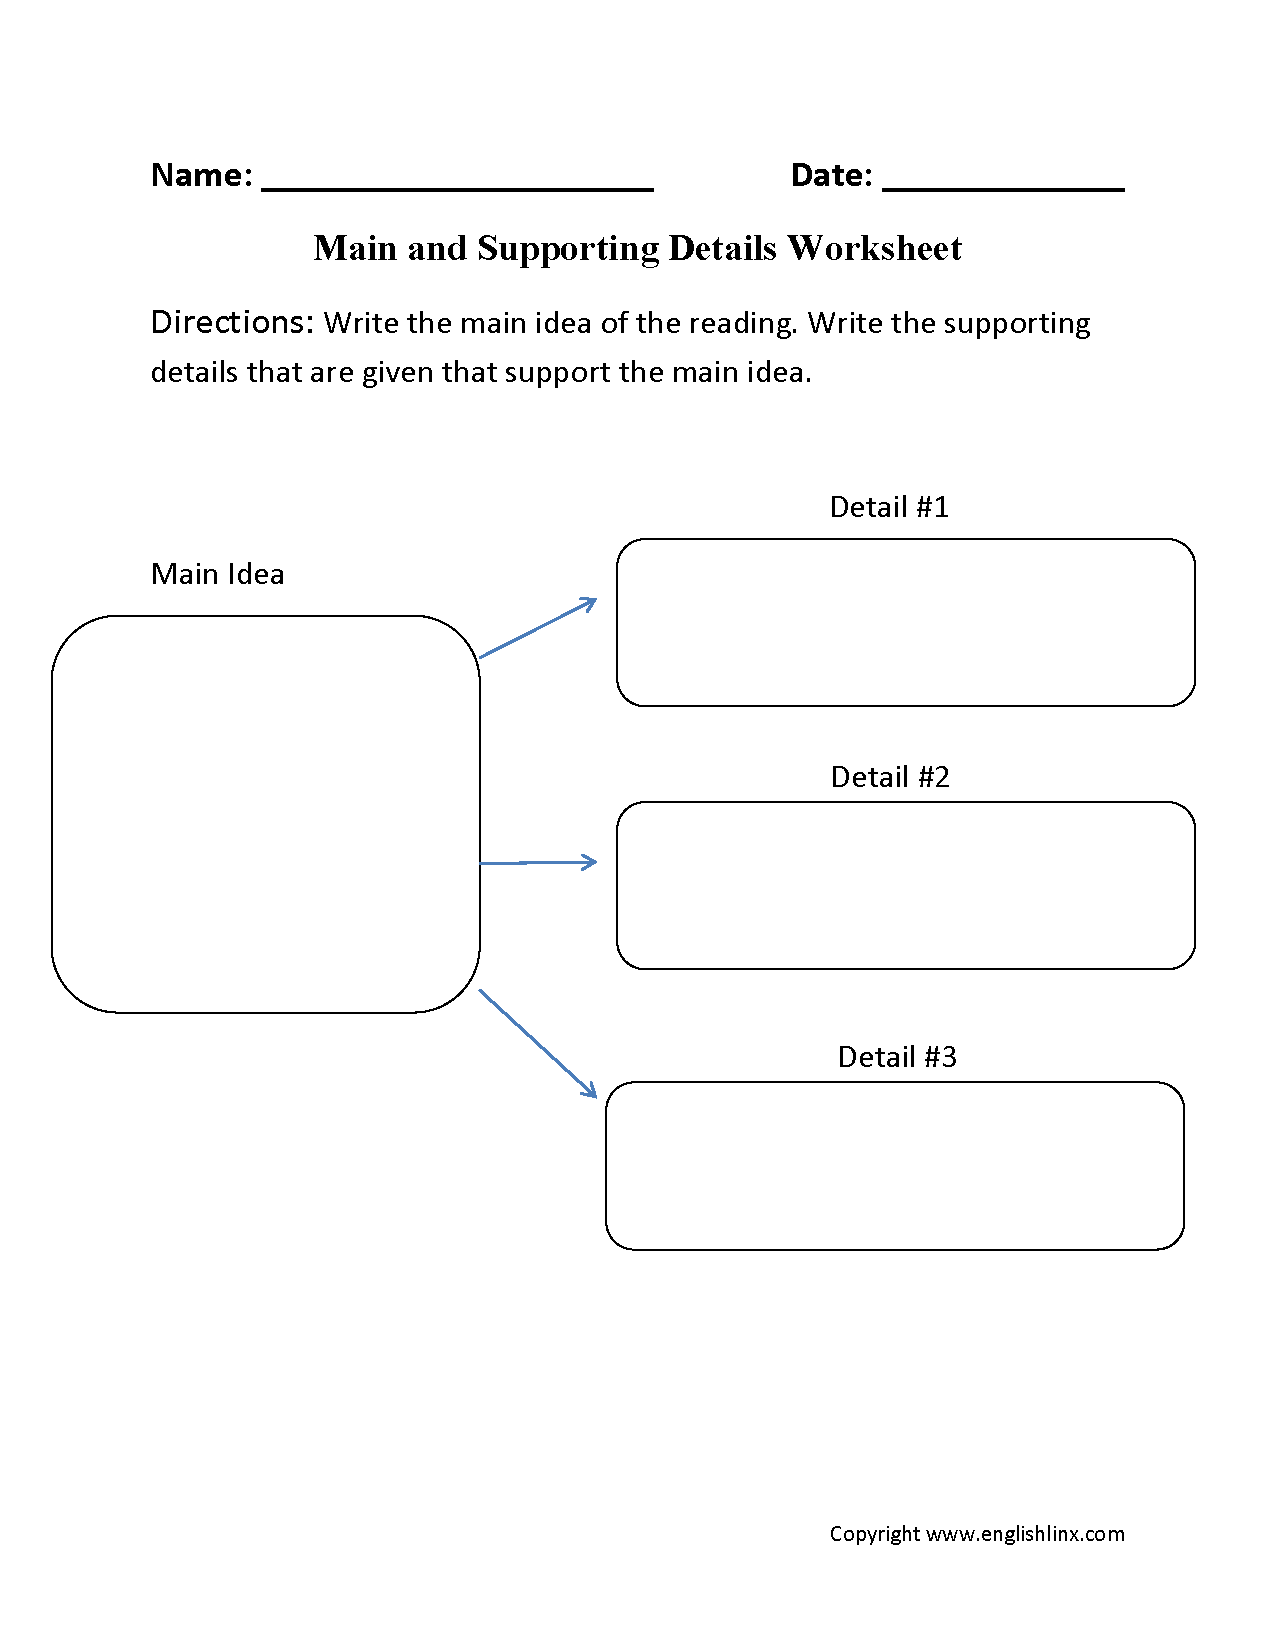 Printables Main Idea And Details Worksheets main idea worksheets and supporting details worksheet worksheet